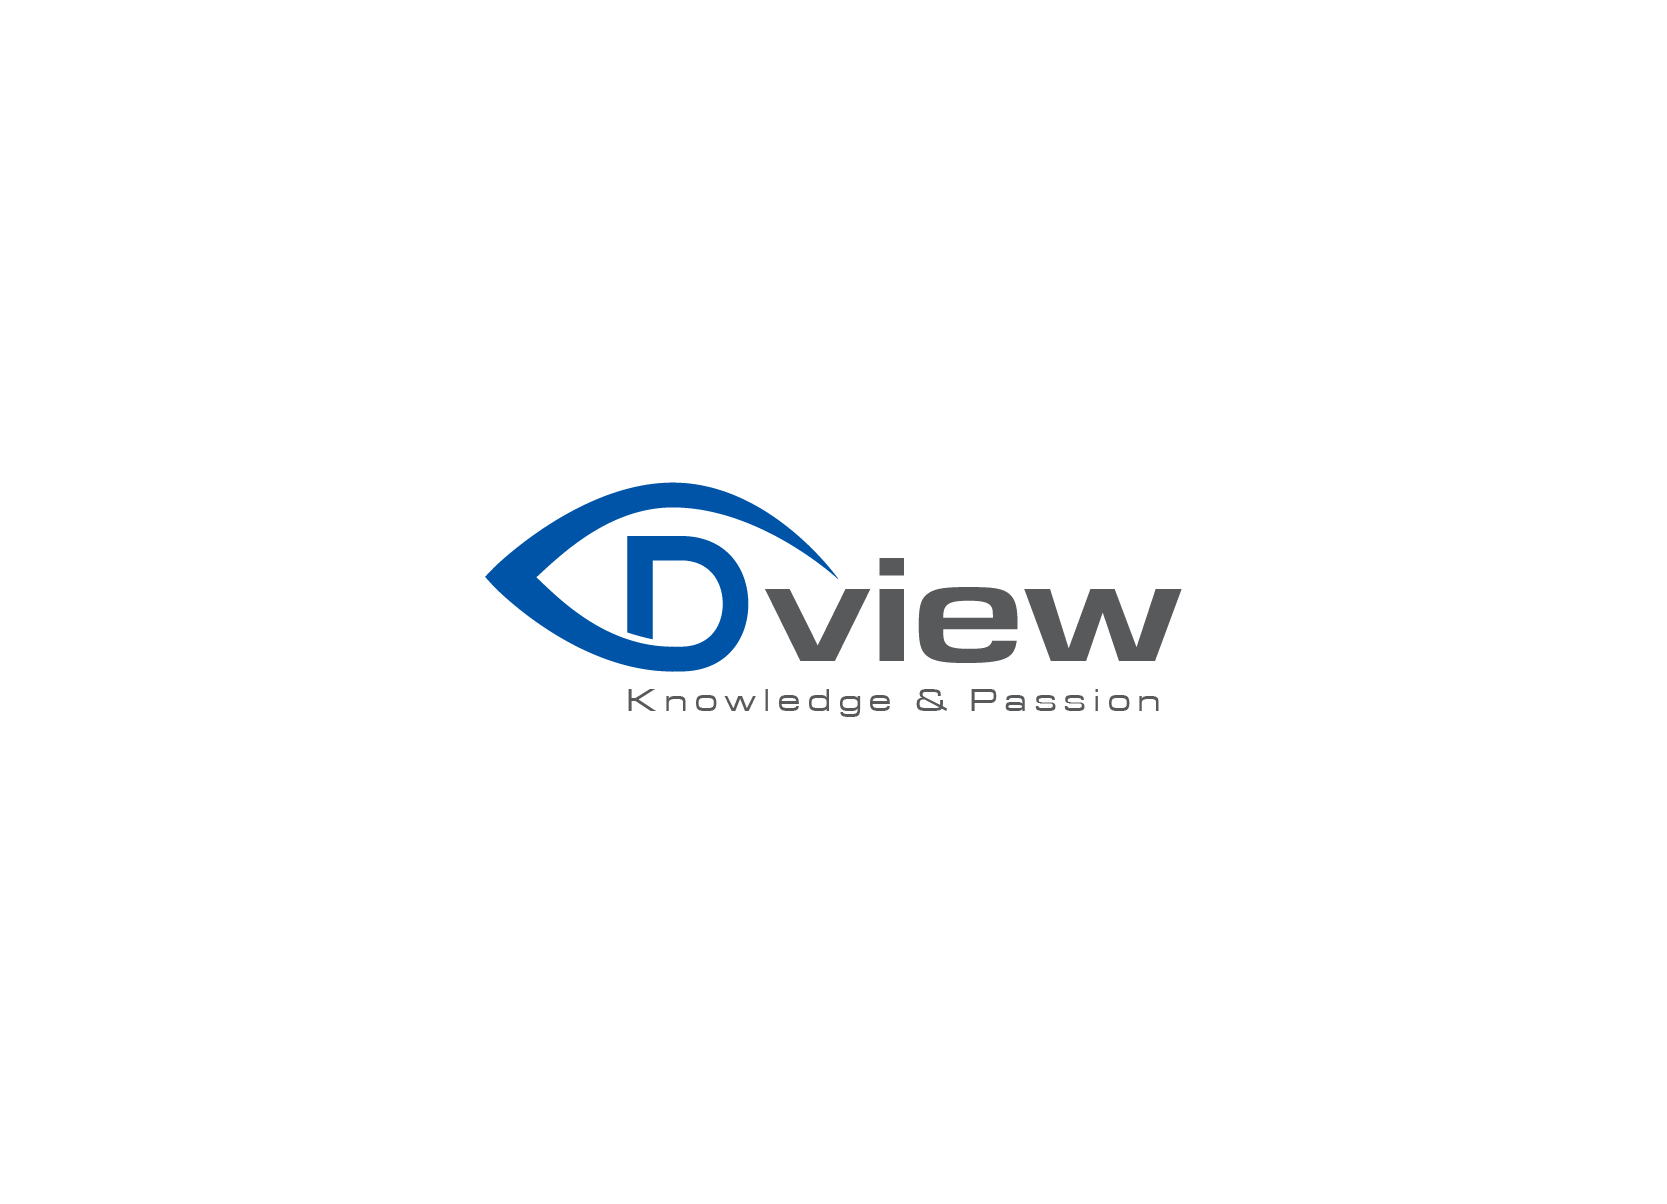 Convey in a pleasing and modern logo the digital era knowledge firm Dview